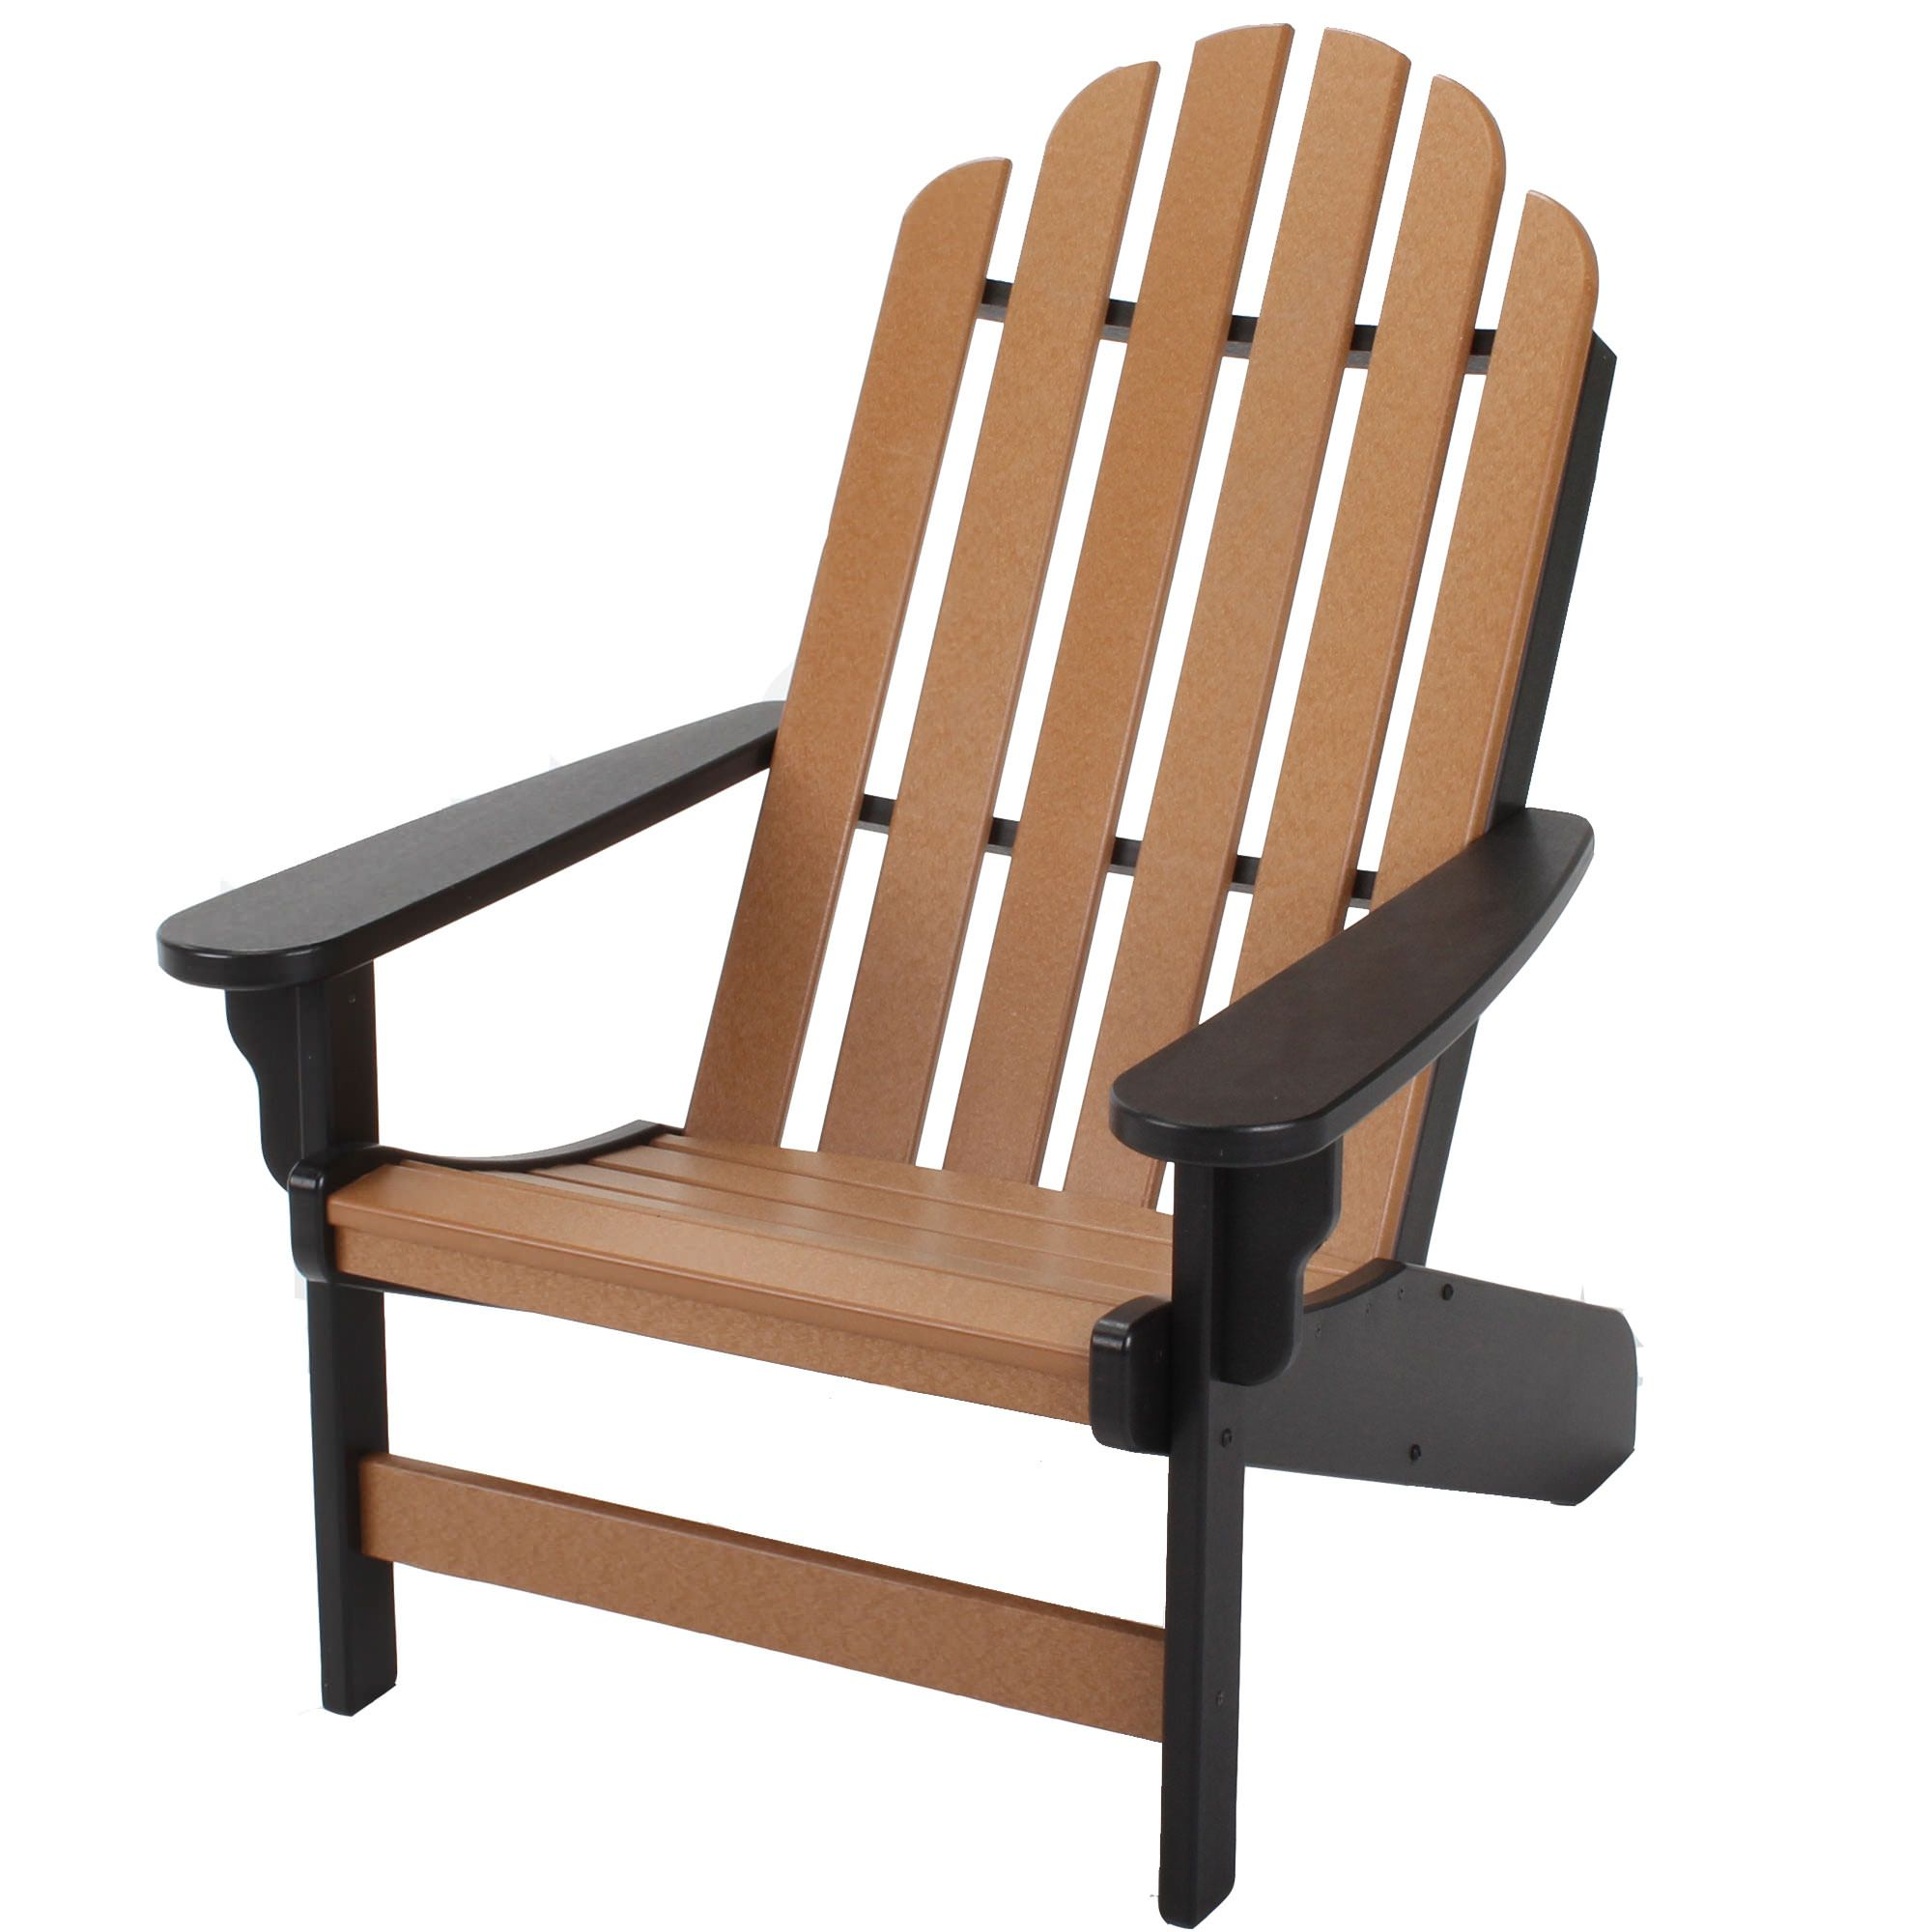 wooden adirondack chairs chair shorea garden oxford teak com wood amazon opportunities